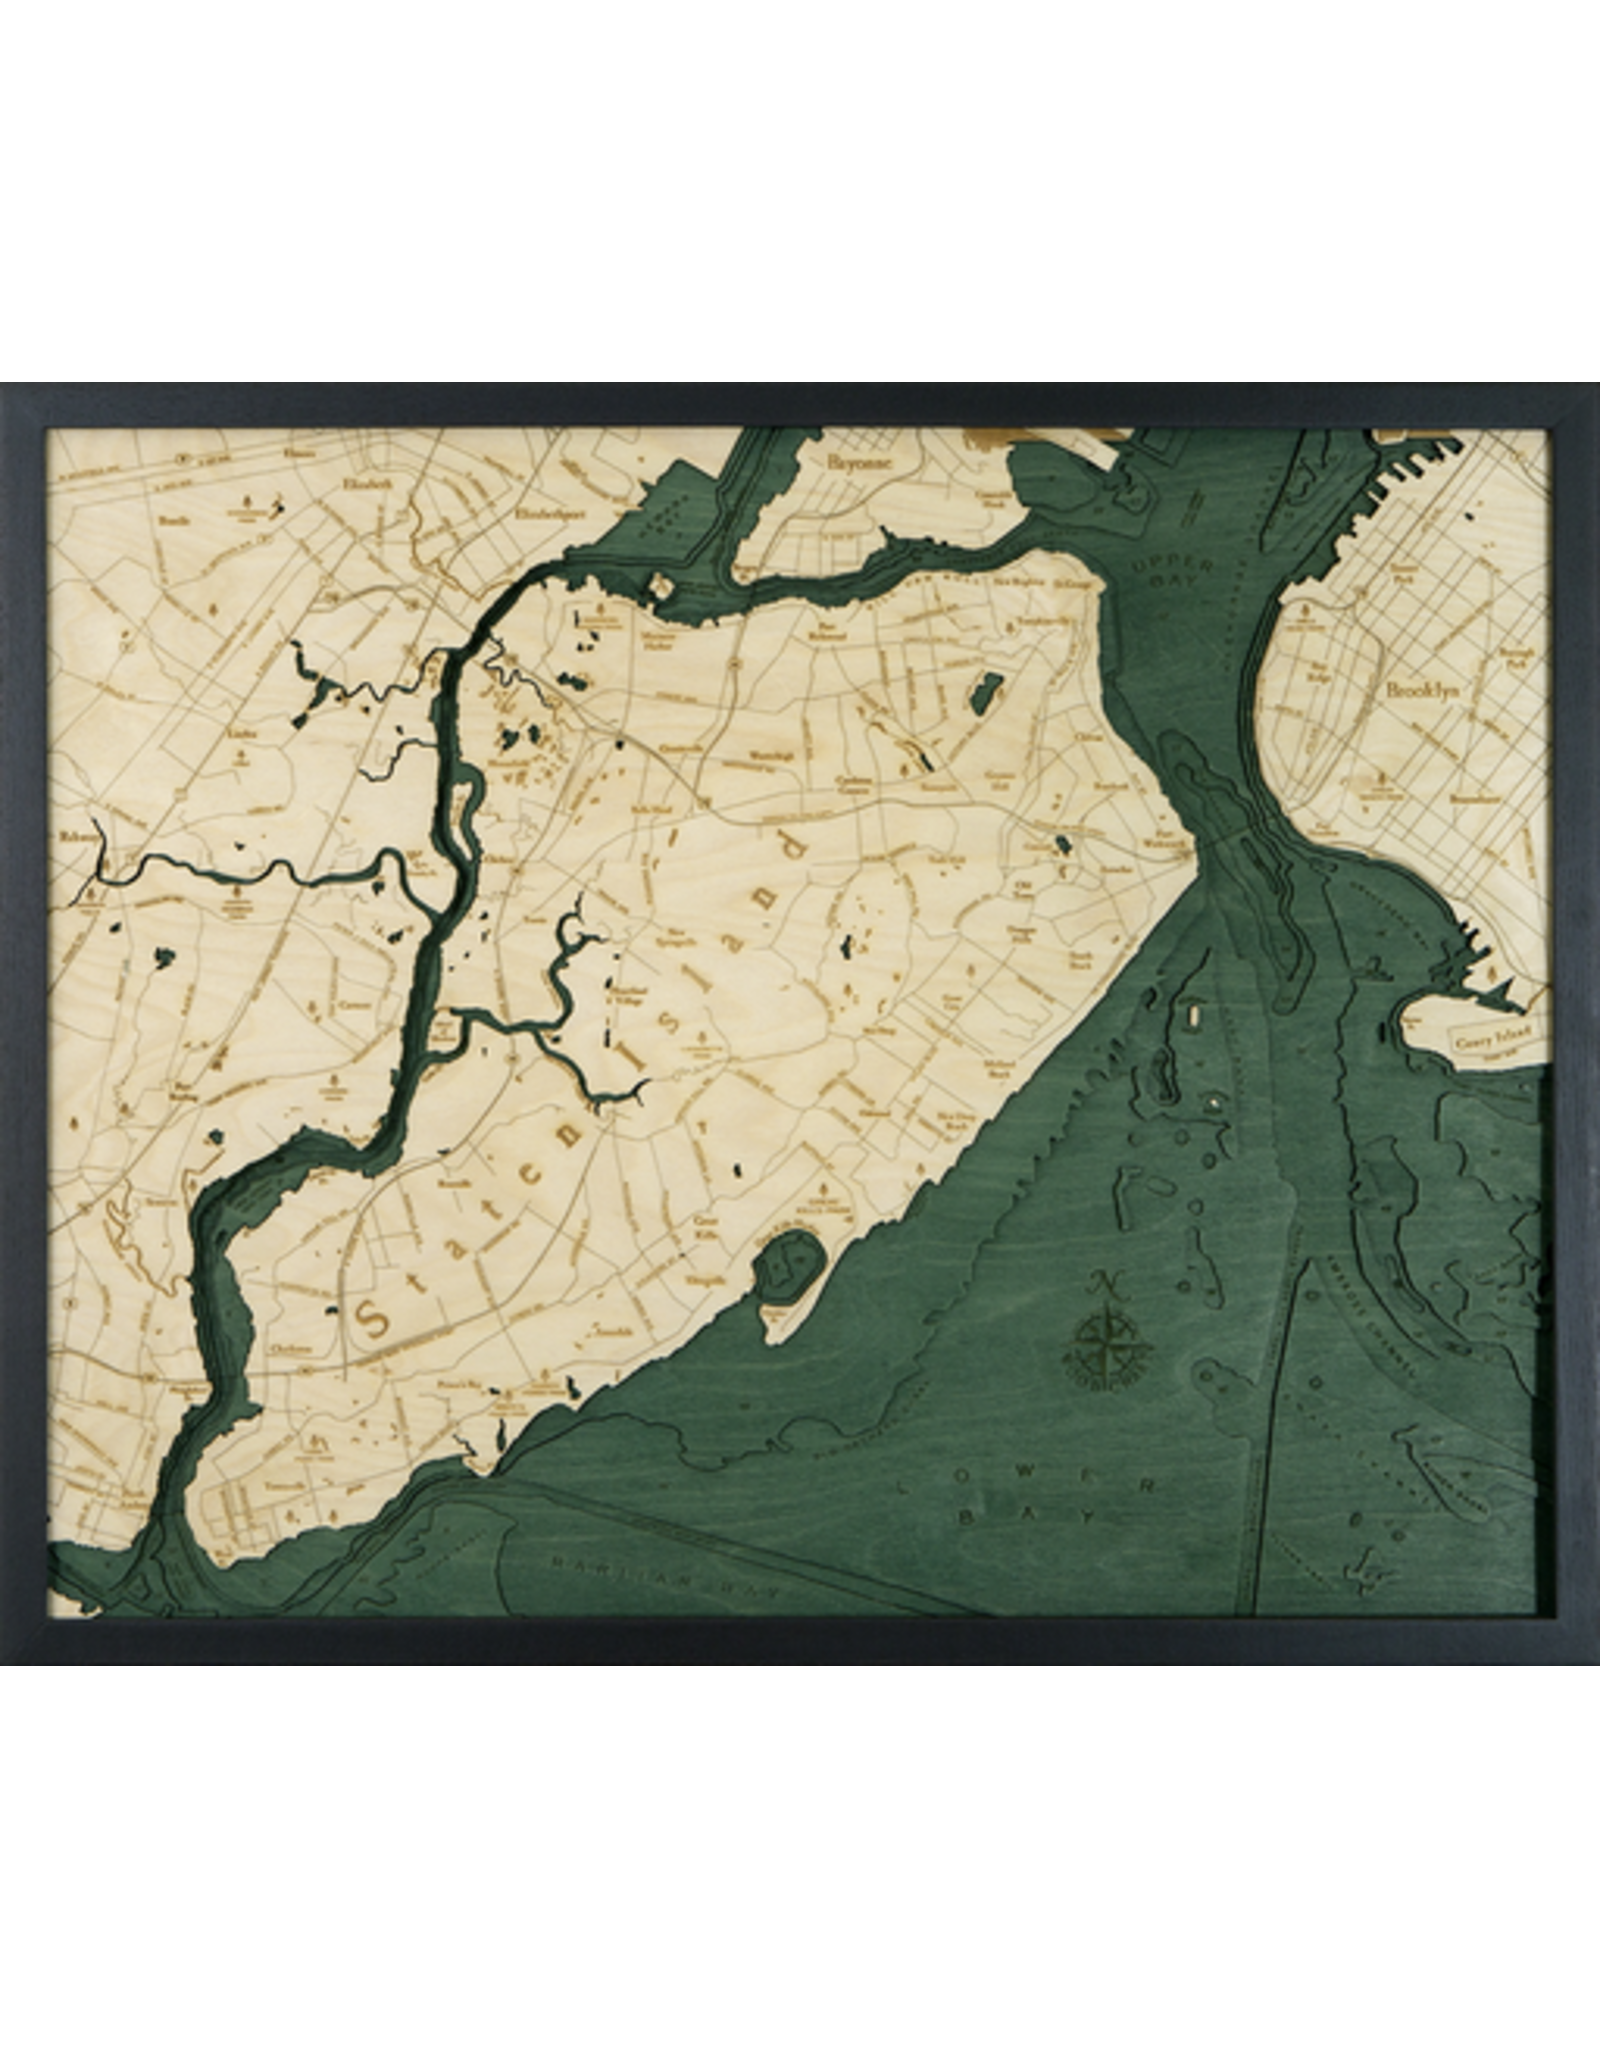 WoodCharts Staten Island (Bathymetric 3-D Wood Carved Nautical Chart)